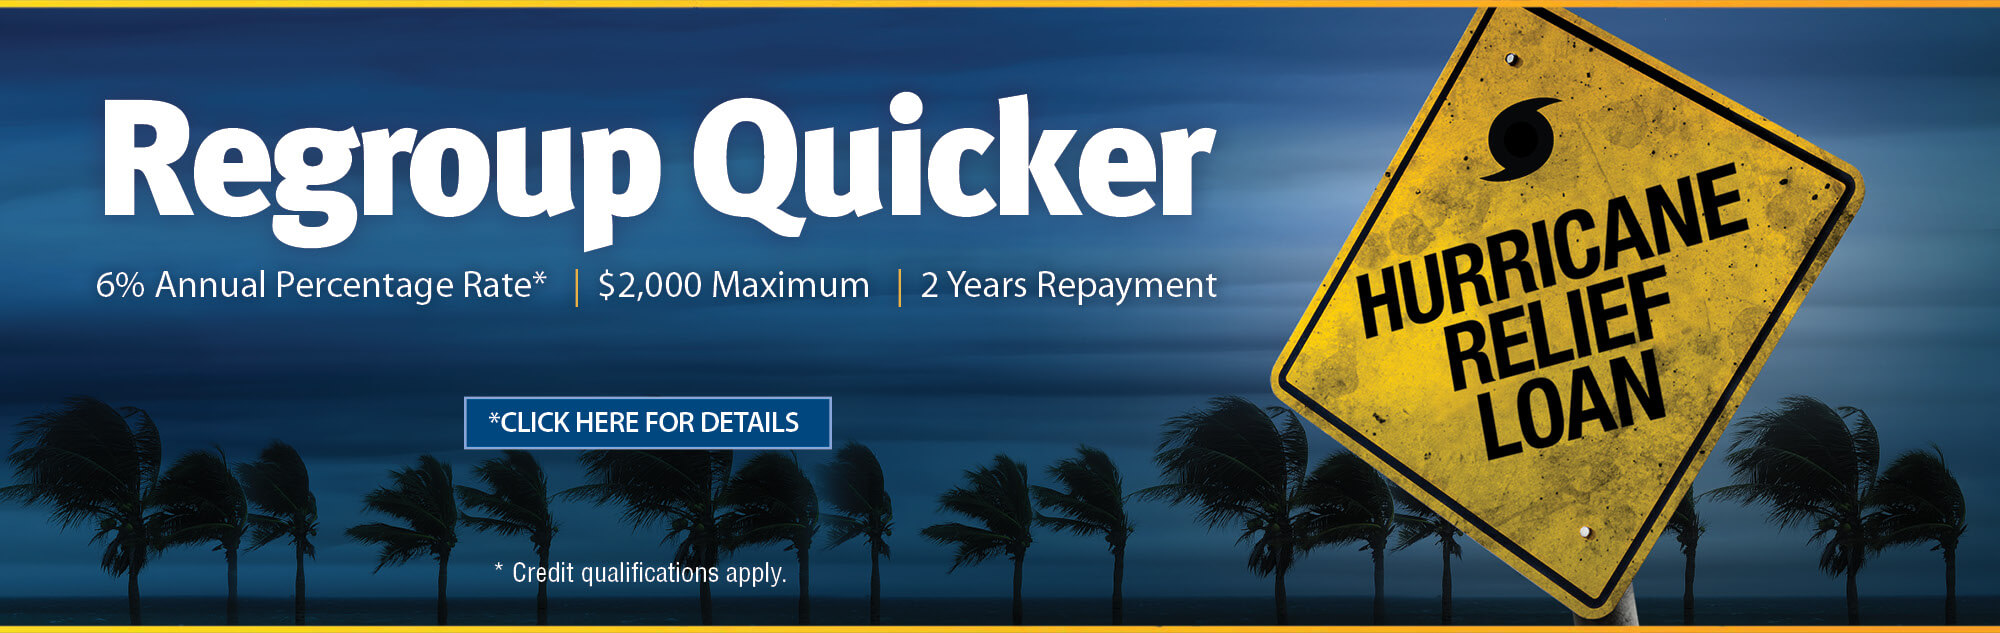 Regroup quicker. 6% Annual Percentage Rate* $2,000 maximum and 2 years repayment. Click here for details. *Credit qualifications apply.